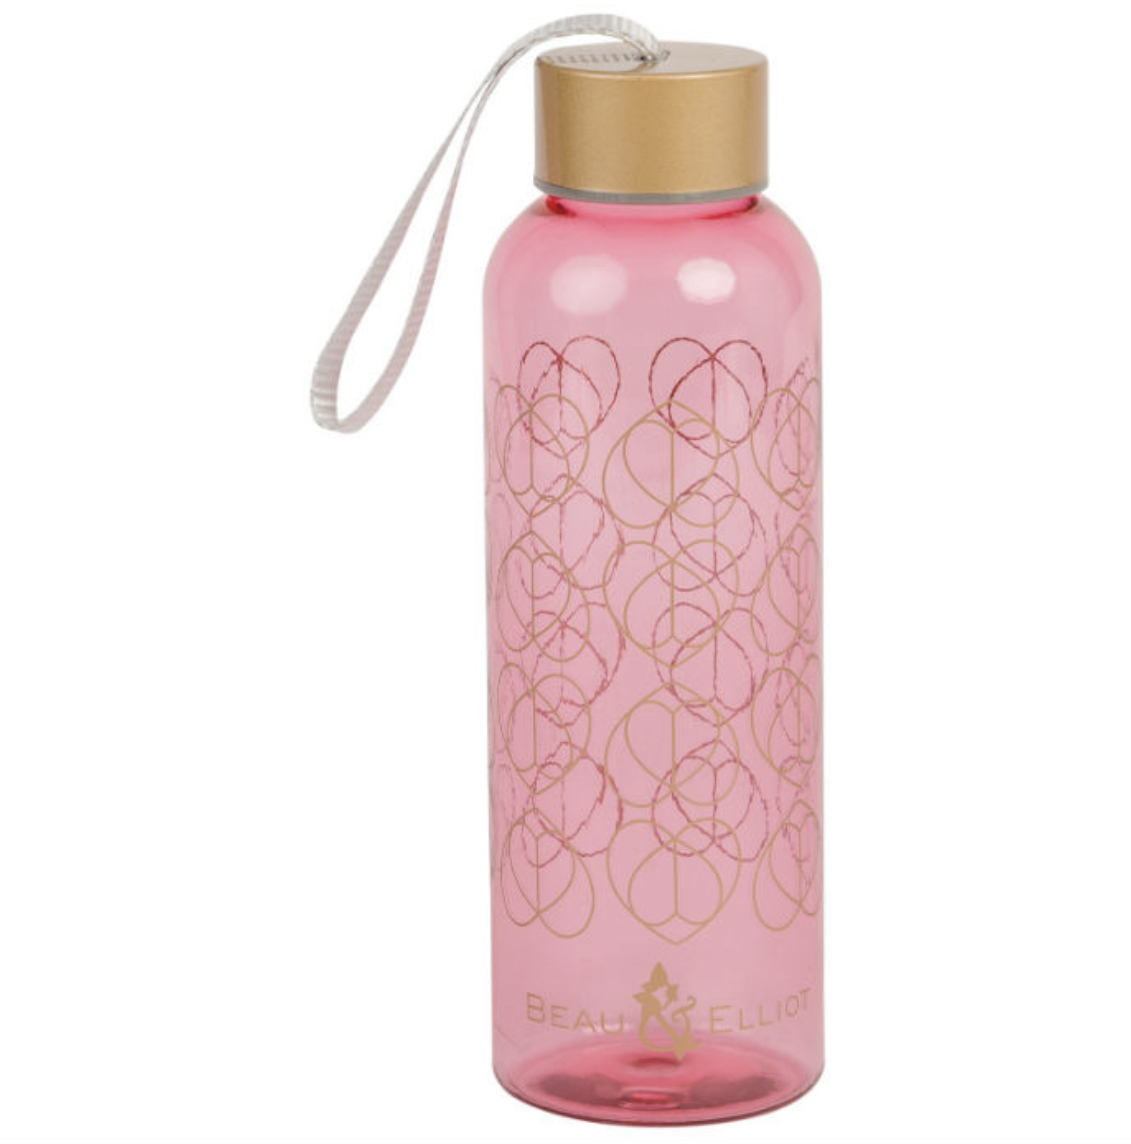 ORCHID DRINKS BOTTLE 500ML. BEAU & ELLIOT